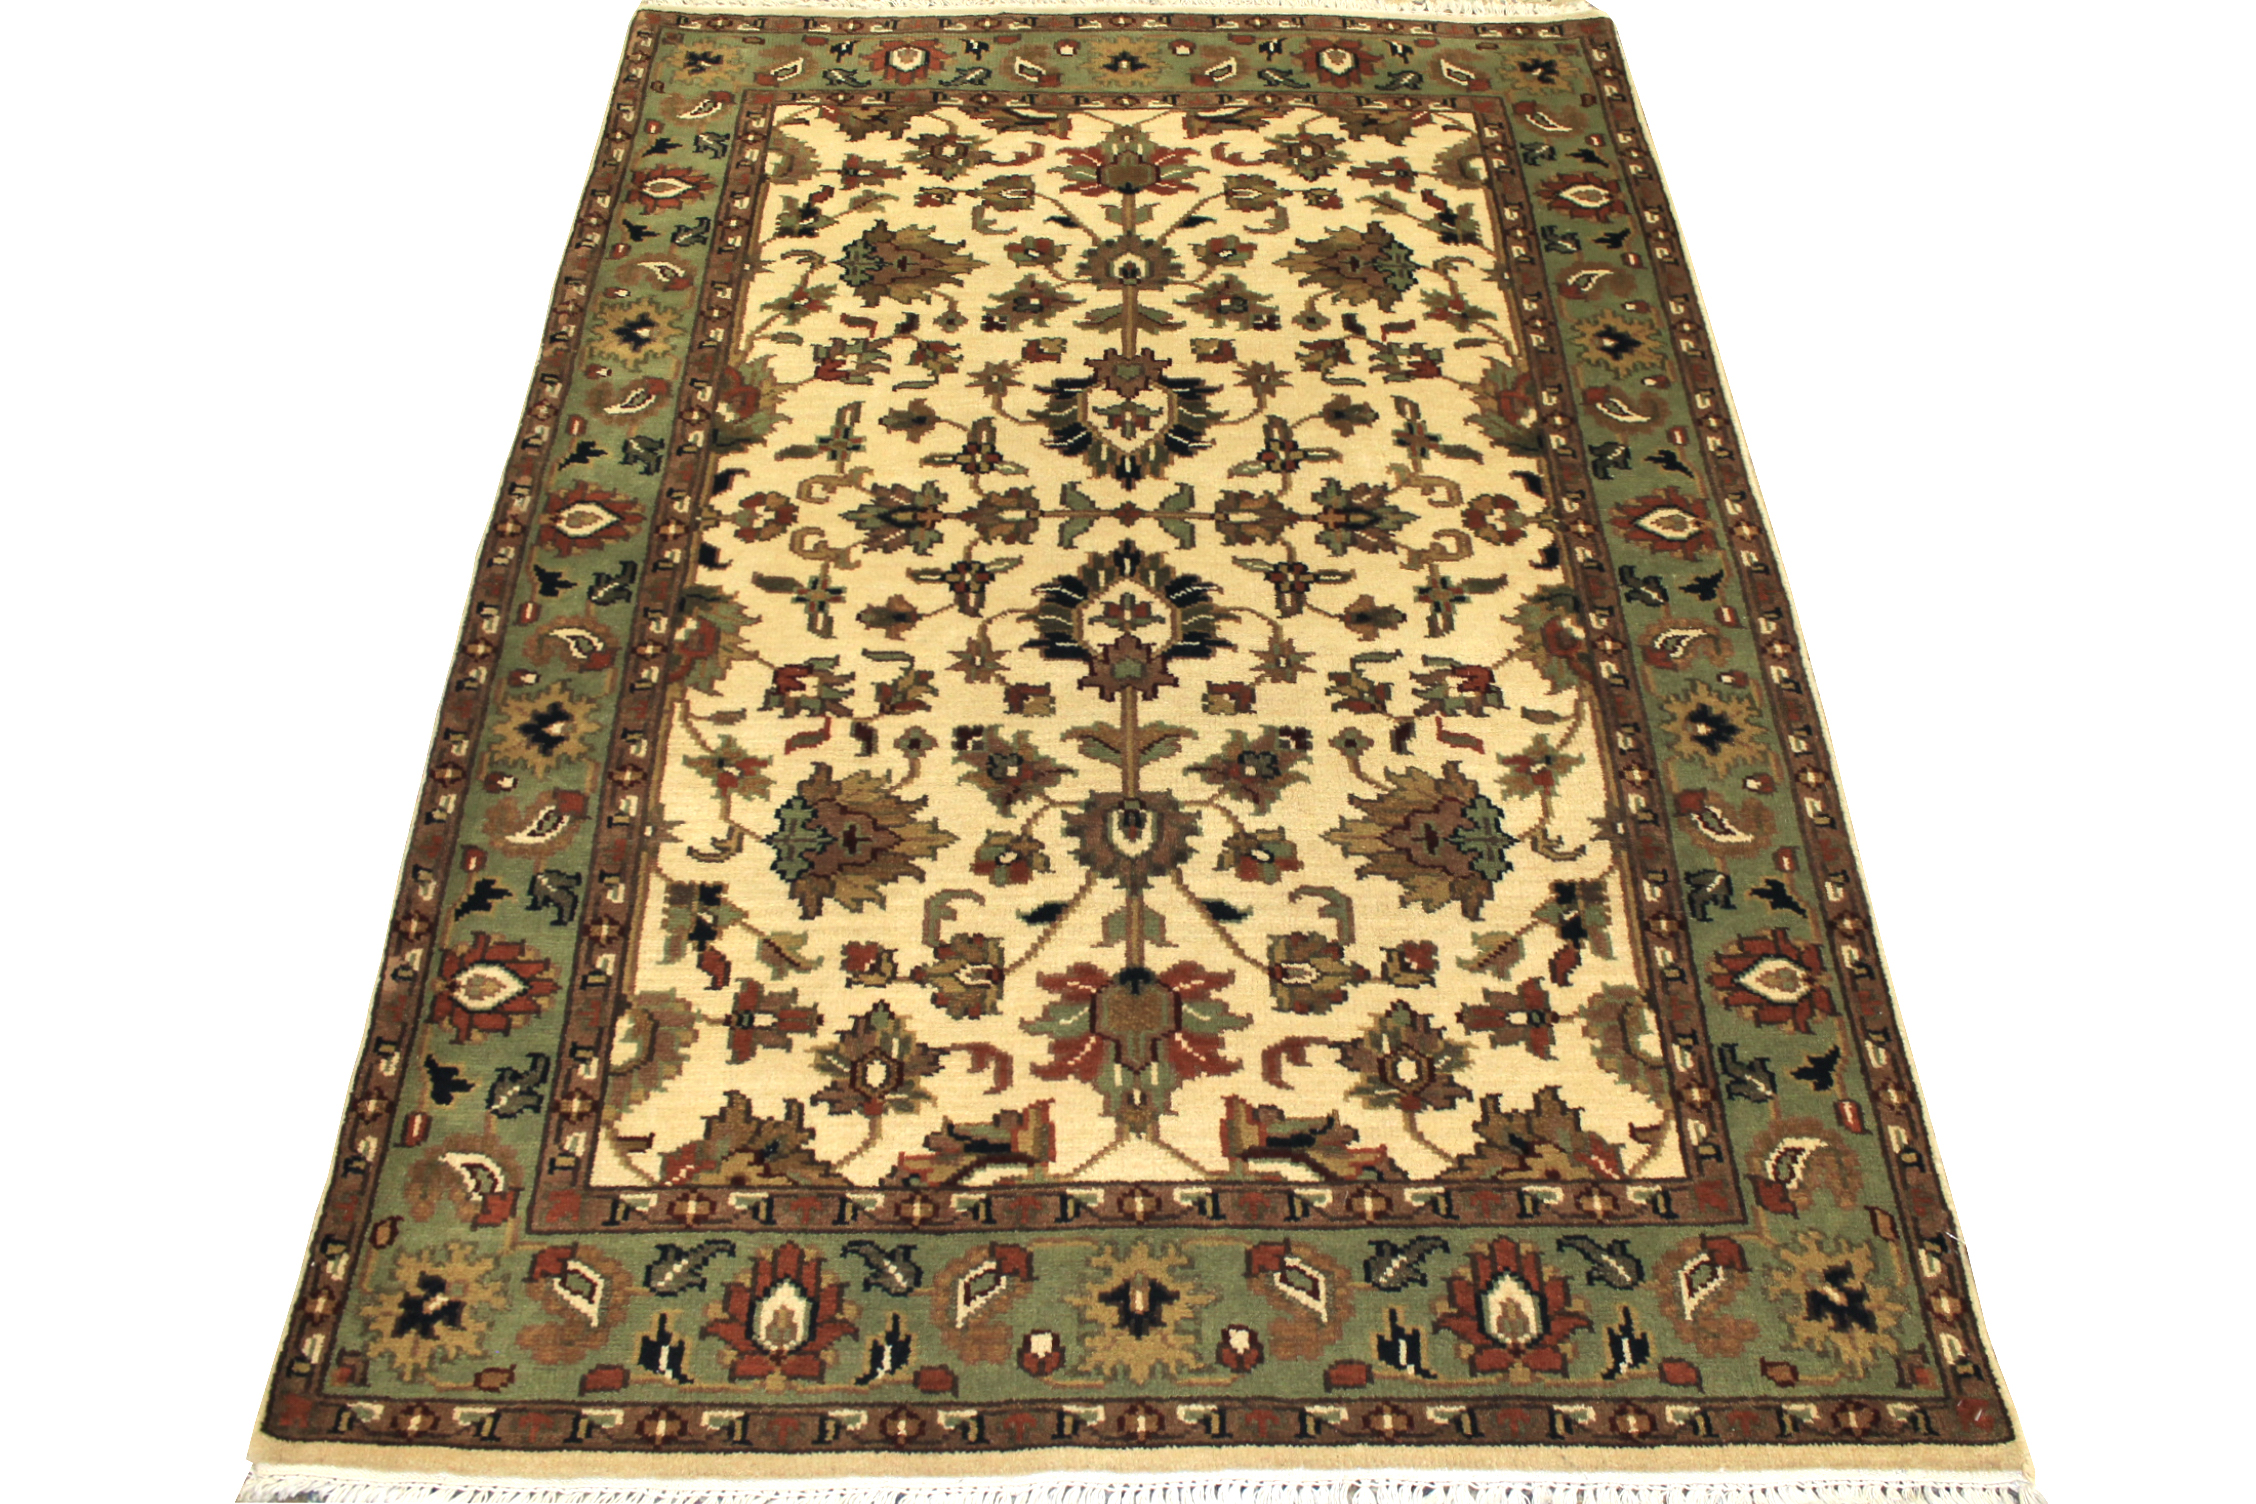 4x6 Traditional Hand Knotted Wool Area Rug - MR7524